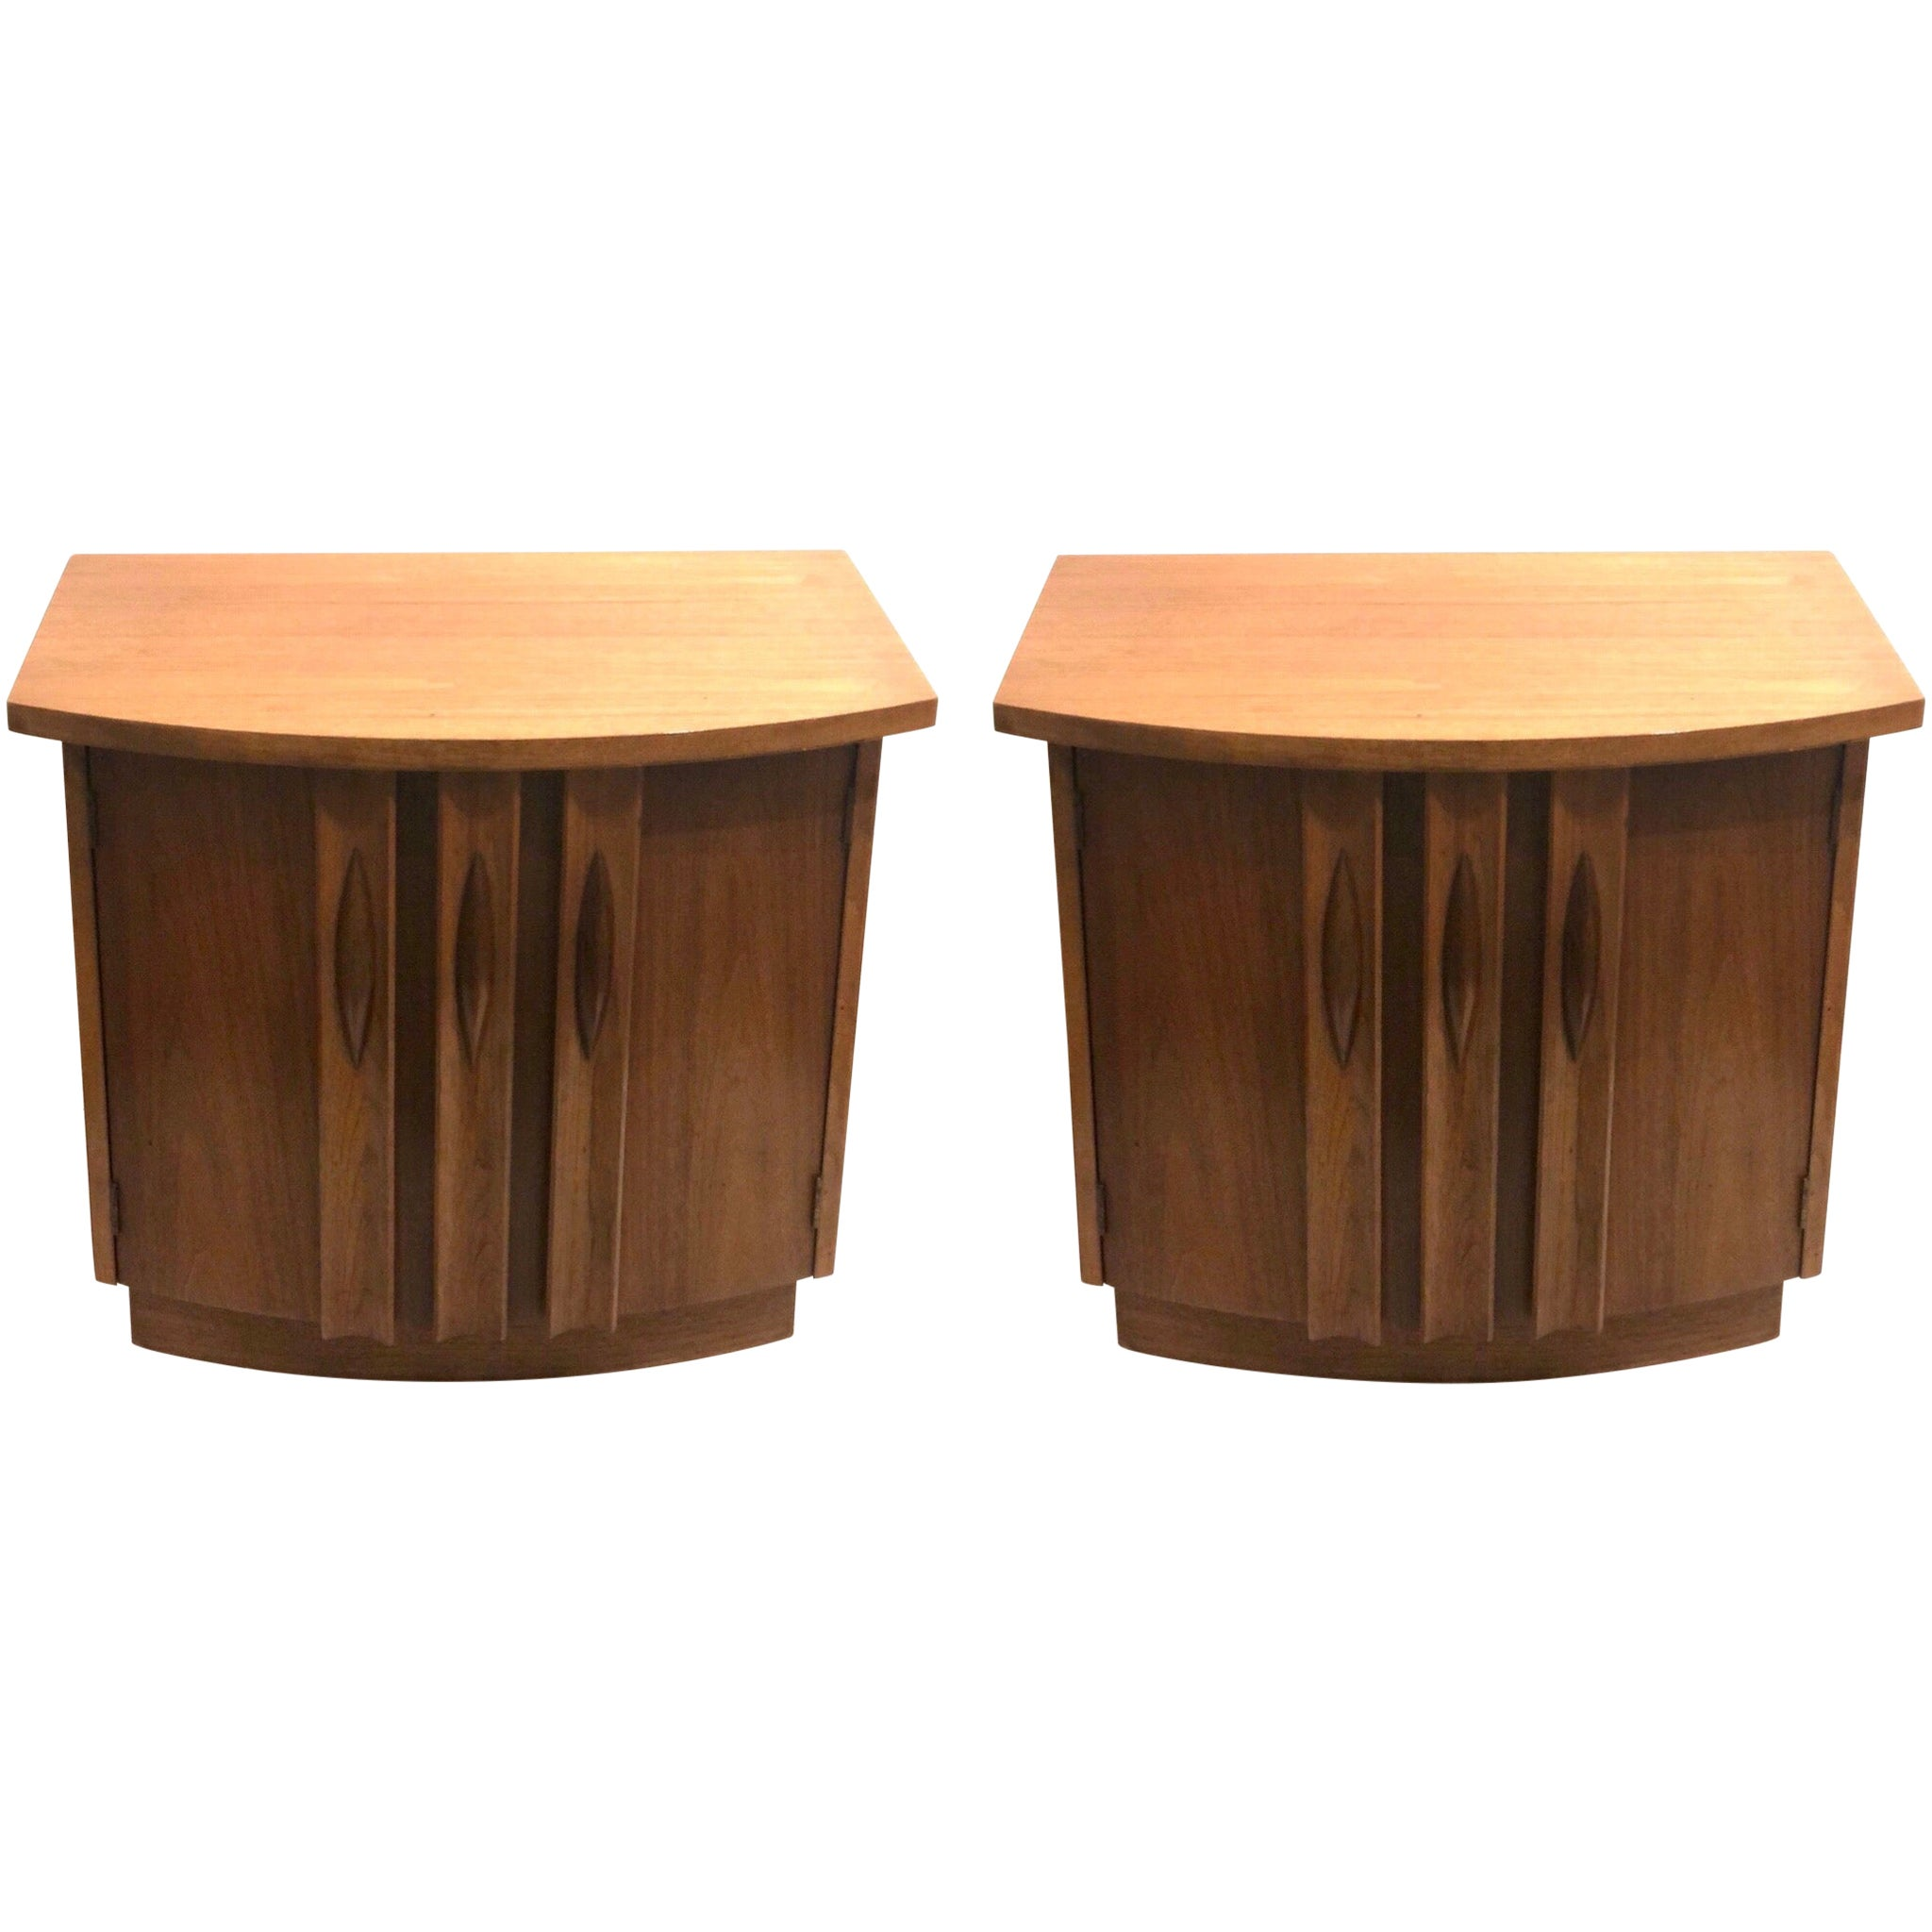 Pair of American Mid-Century Modern Walnut Night Stands